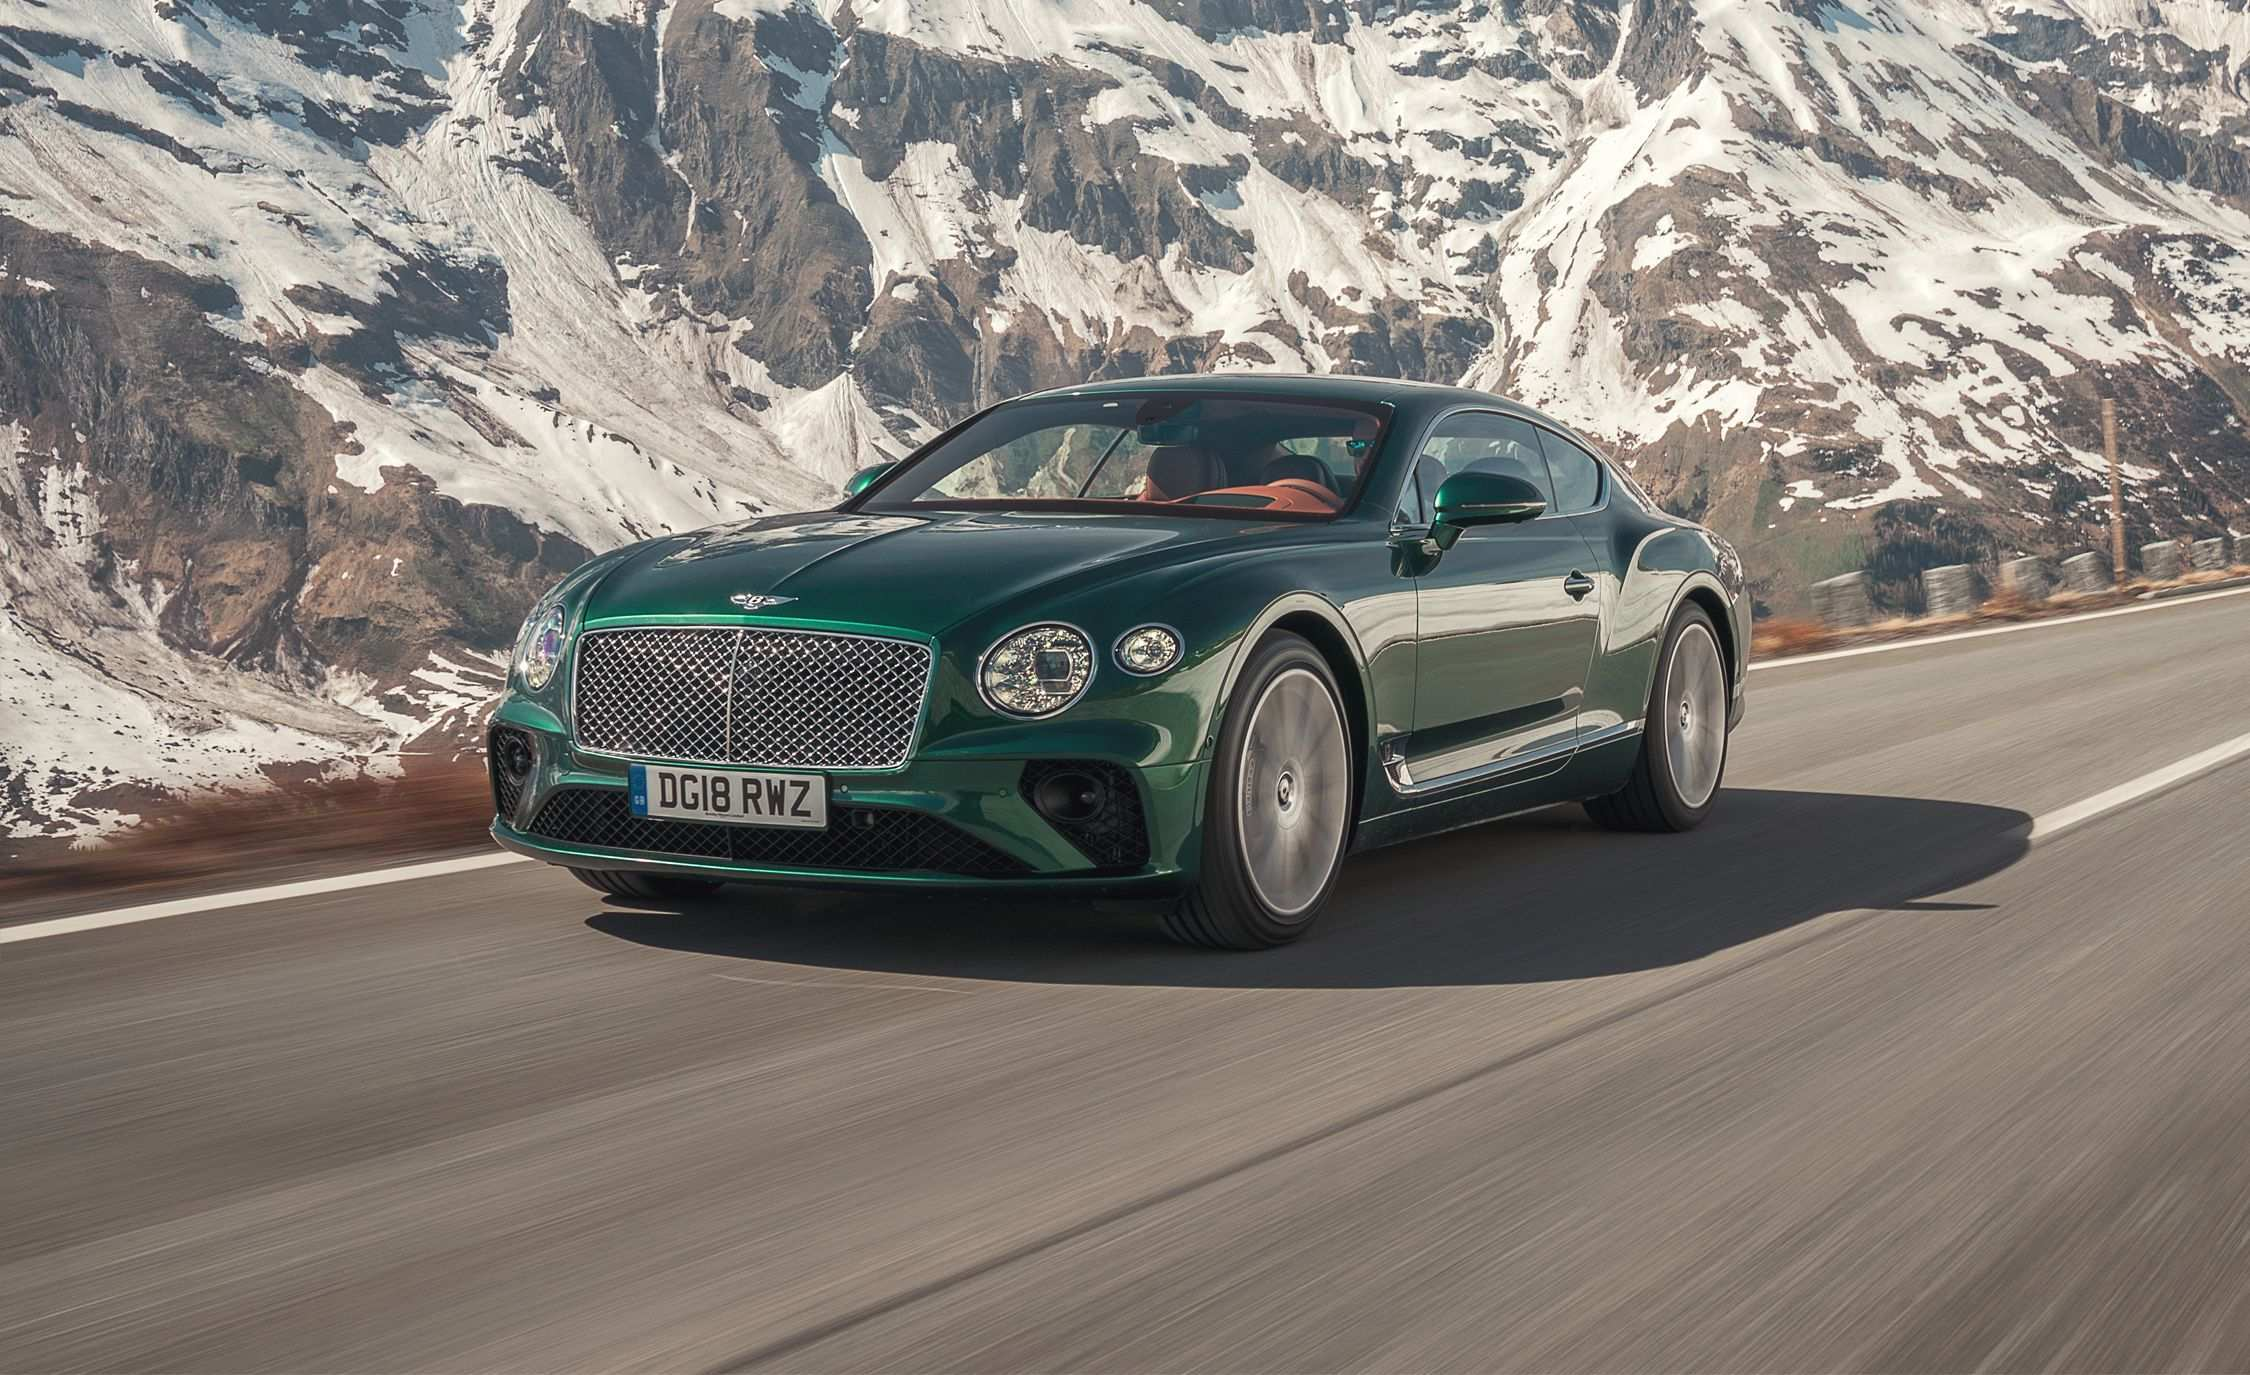 85 Concept of 2019 Bentley Gt Redesign by 2019 Bentley Gt